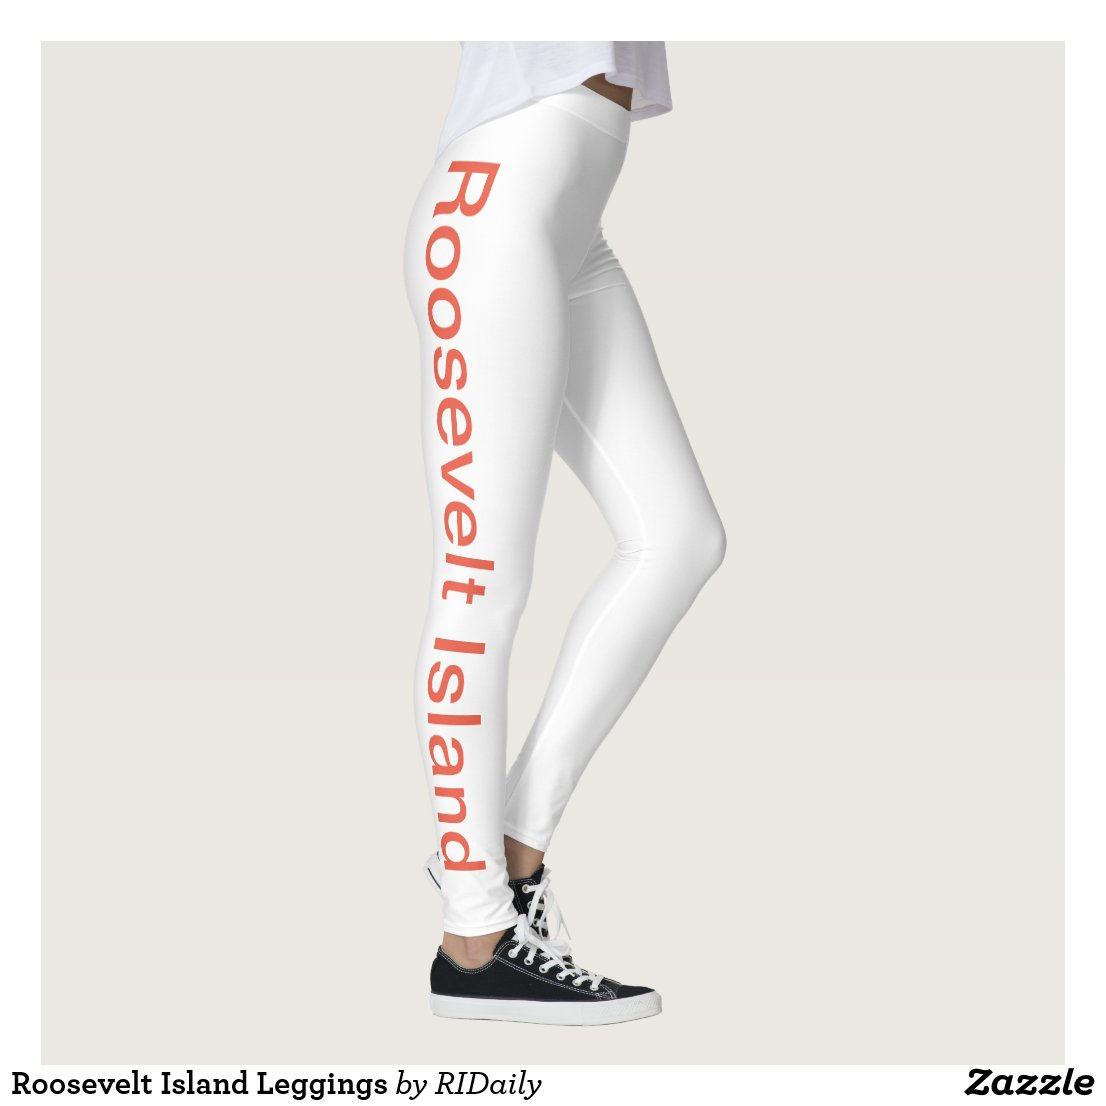 Roosevelt Island Leggings